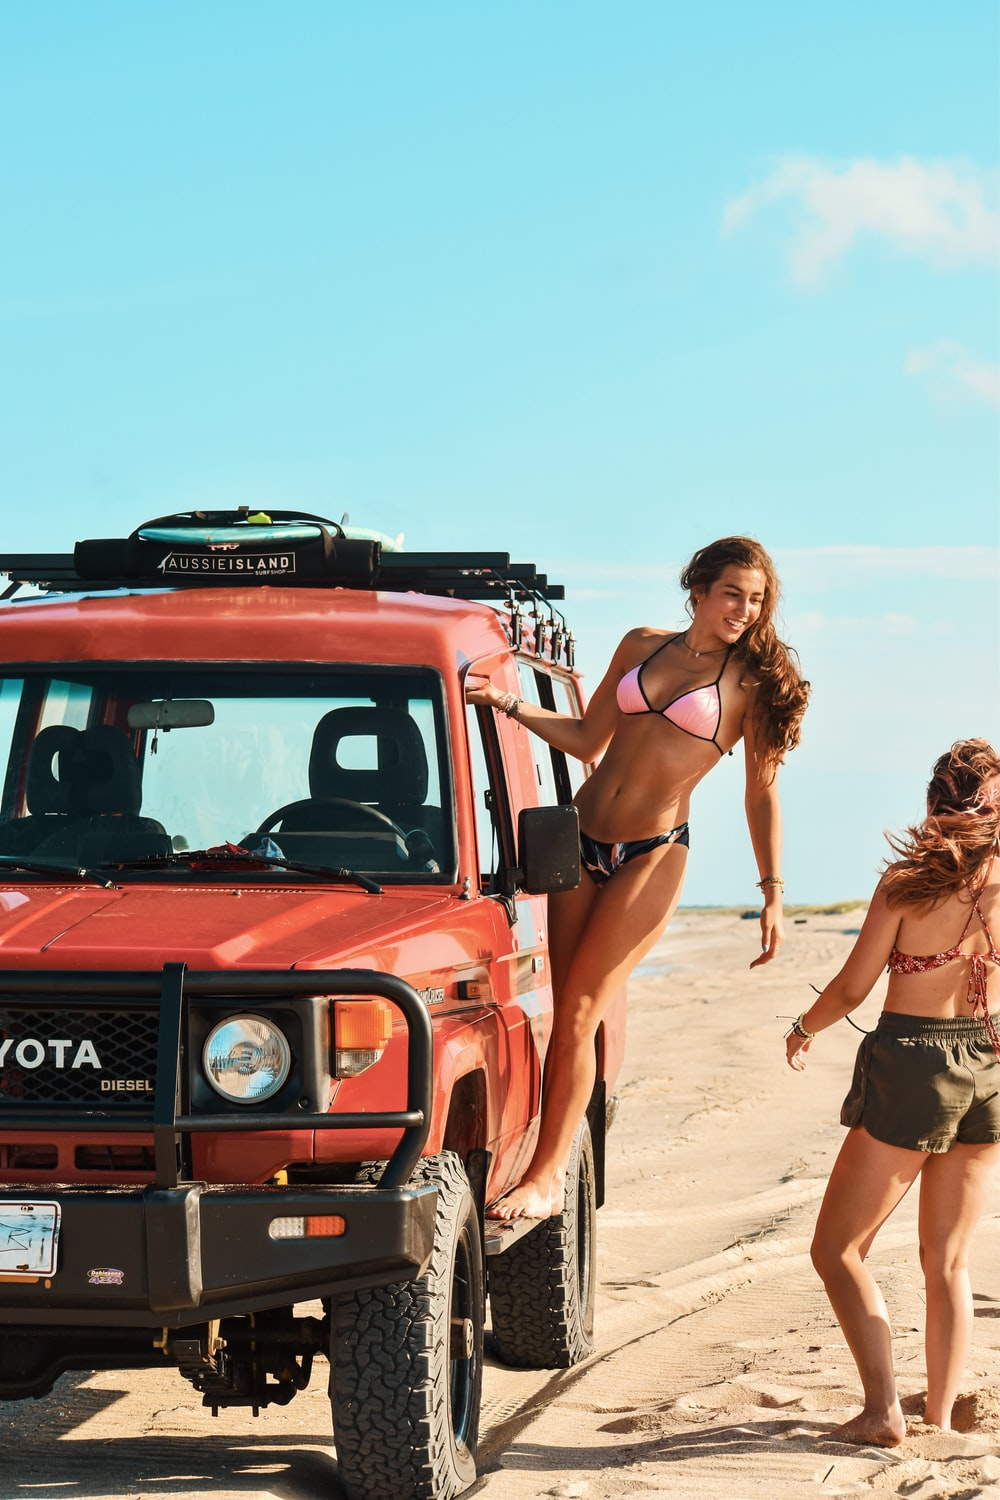 woman in black bikini standing beside red car during daytime